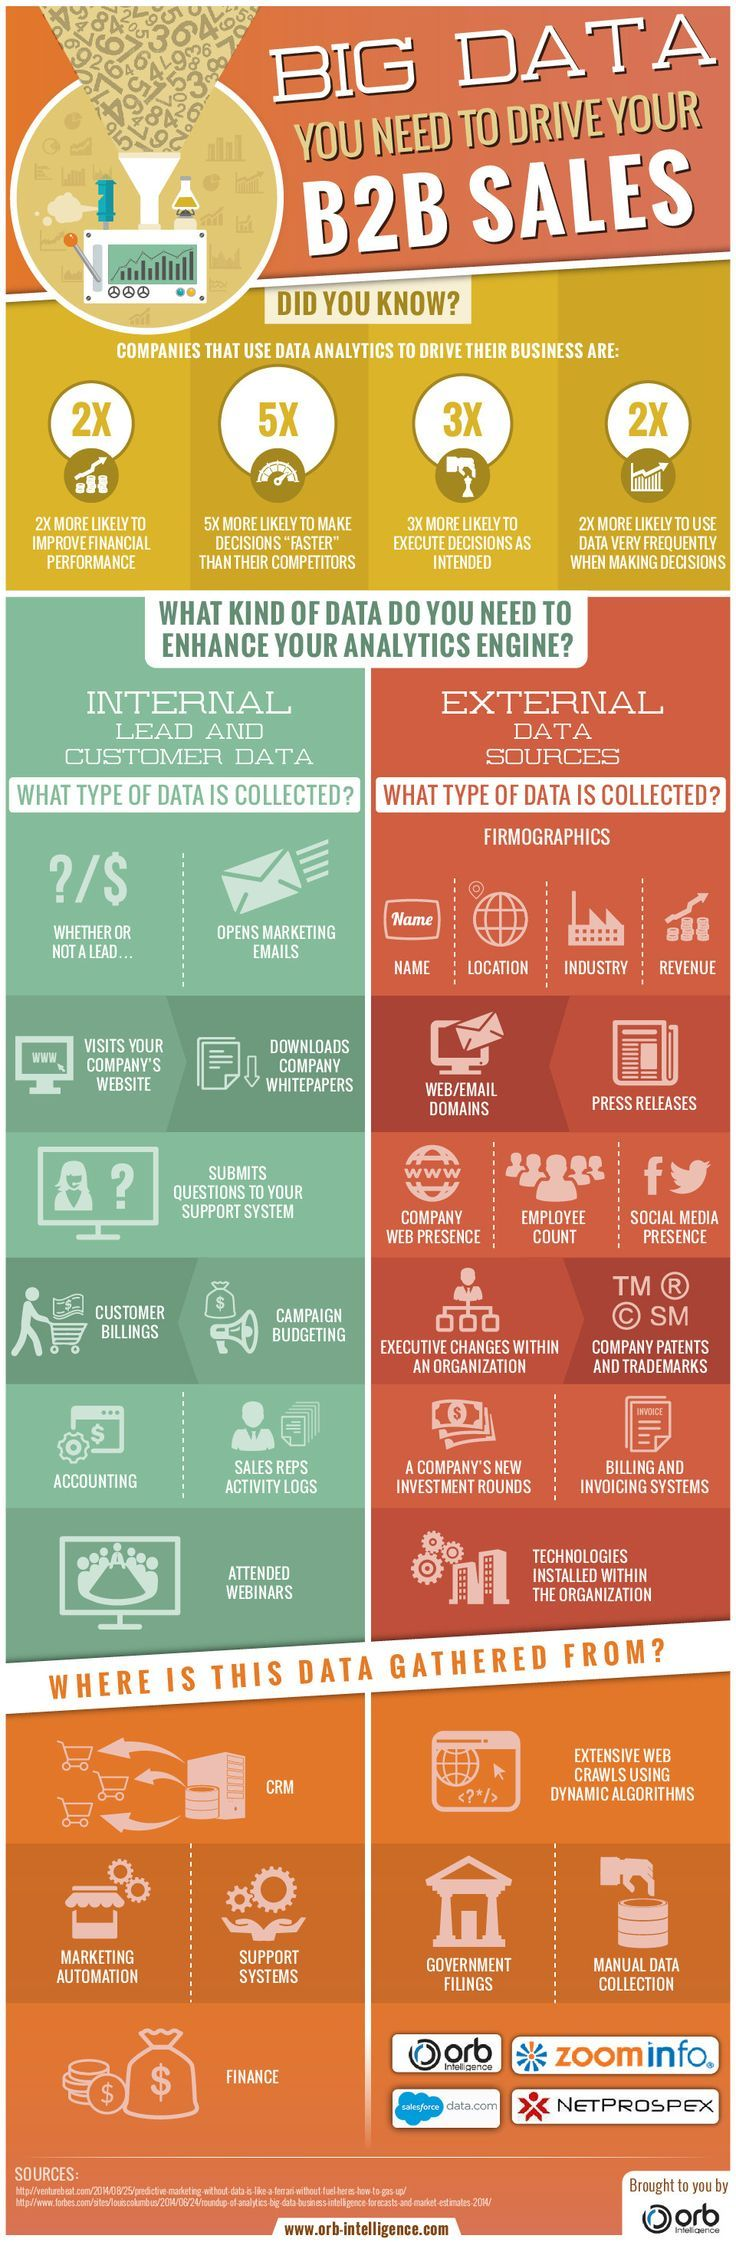 This infographic examines the Big Data you need to successfully drive your B2B sales. Click on pin for more information about our company.